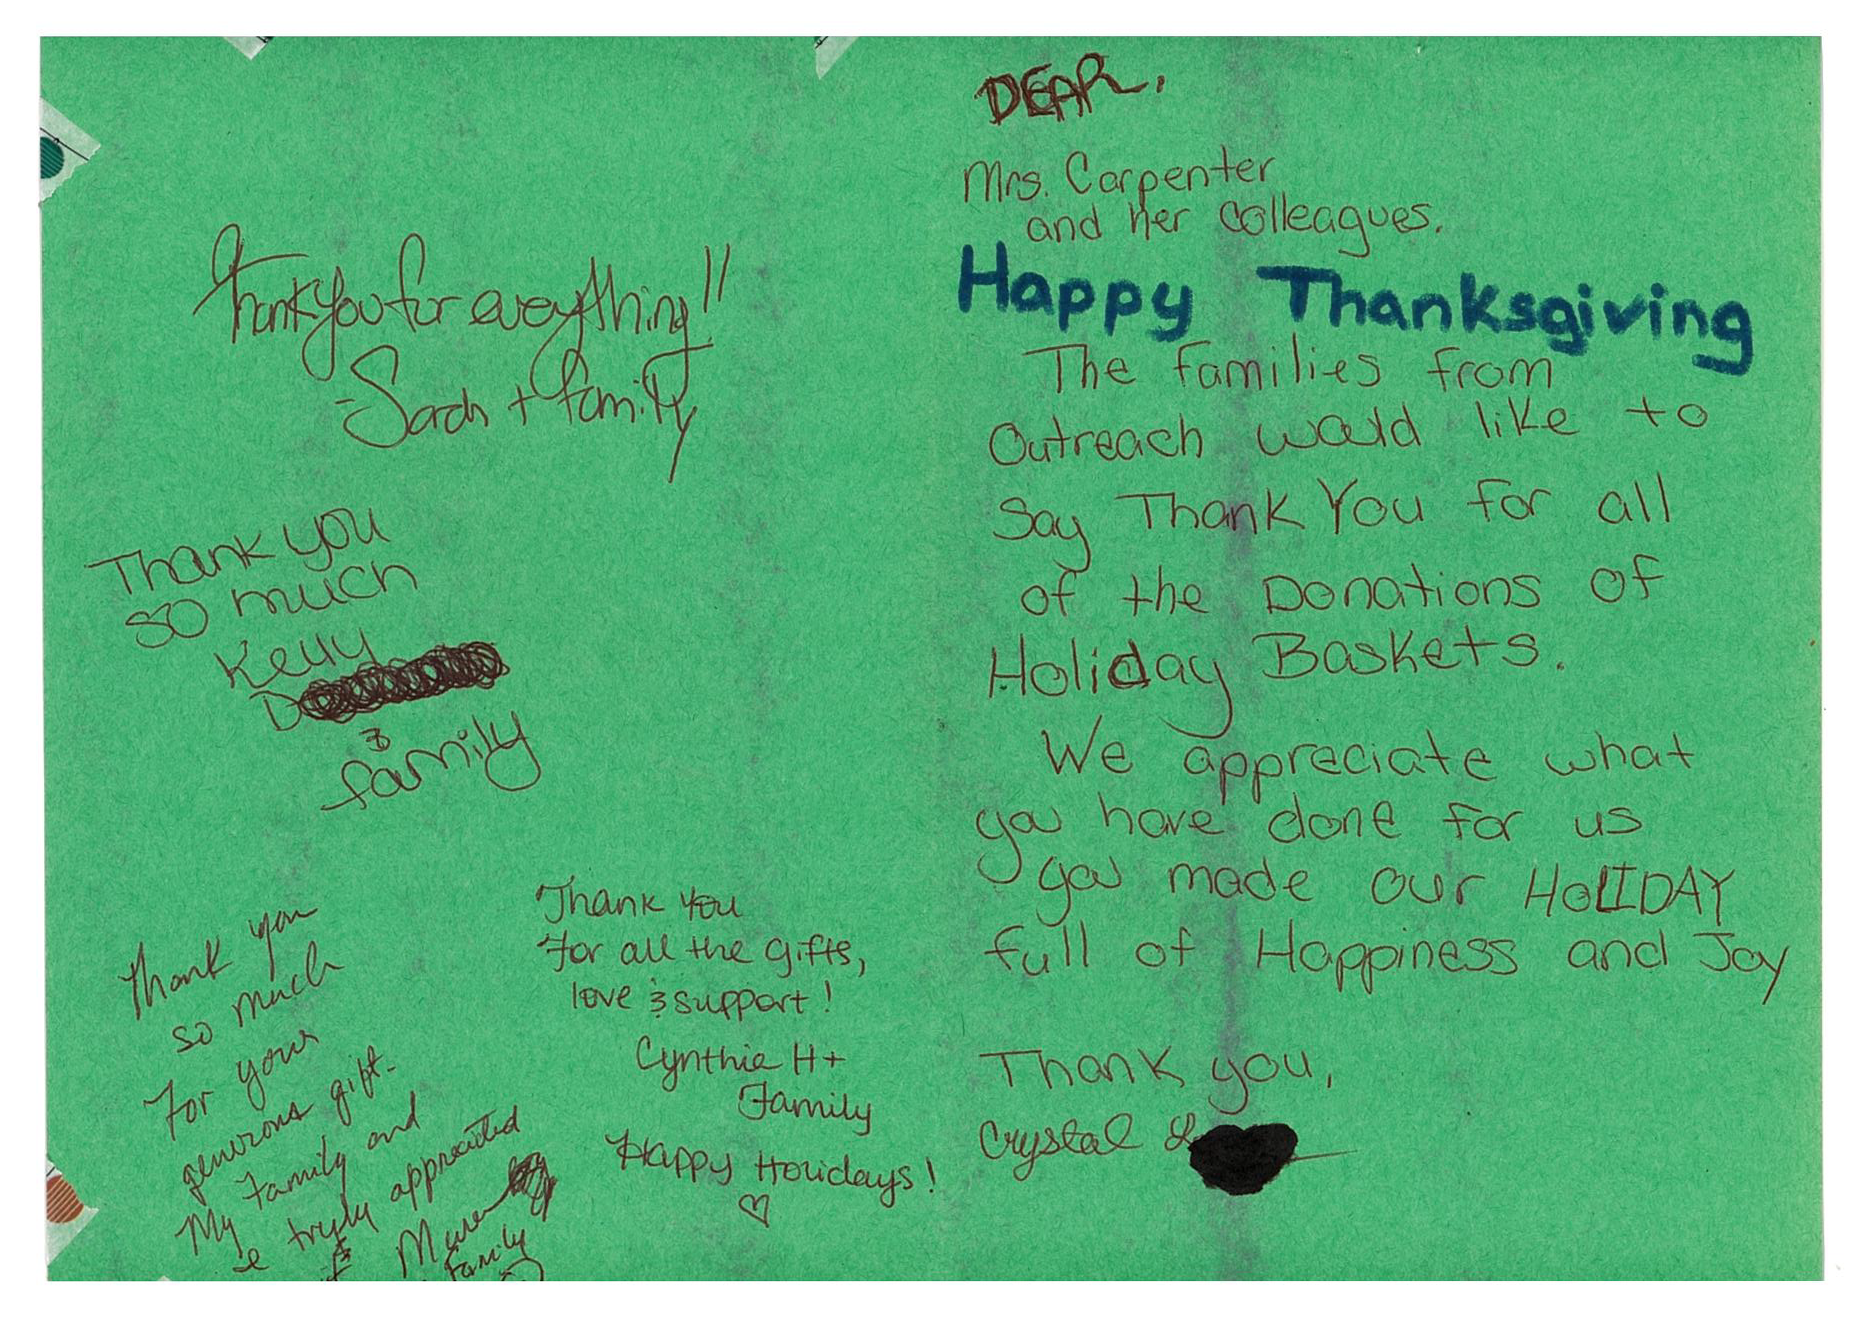 the interior of a hand written card from the families of Outreach, thanking the Town of Islip and Supervisor for their support and donations.